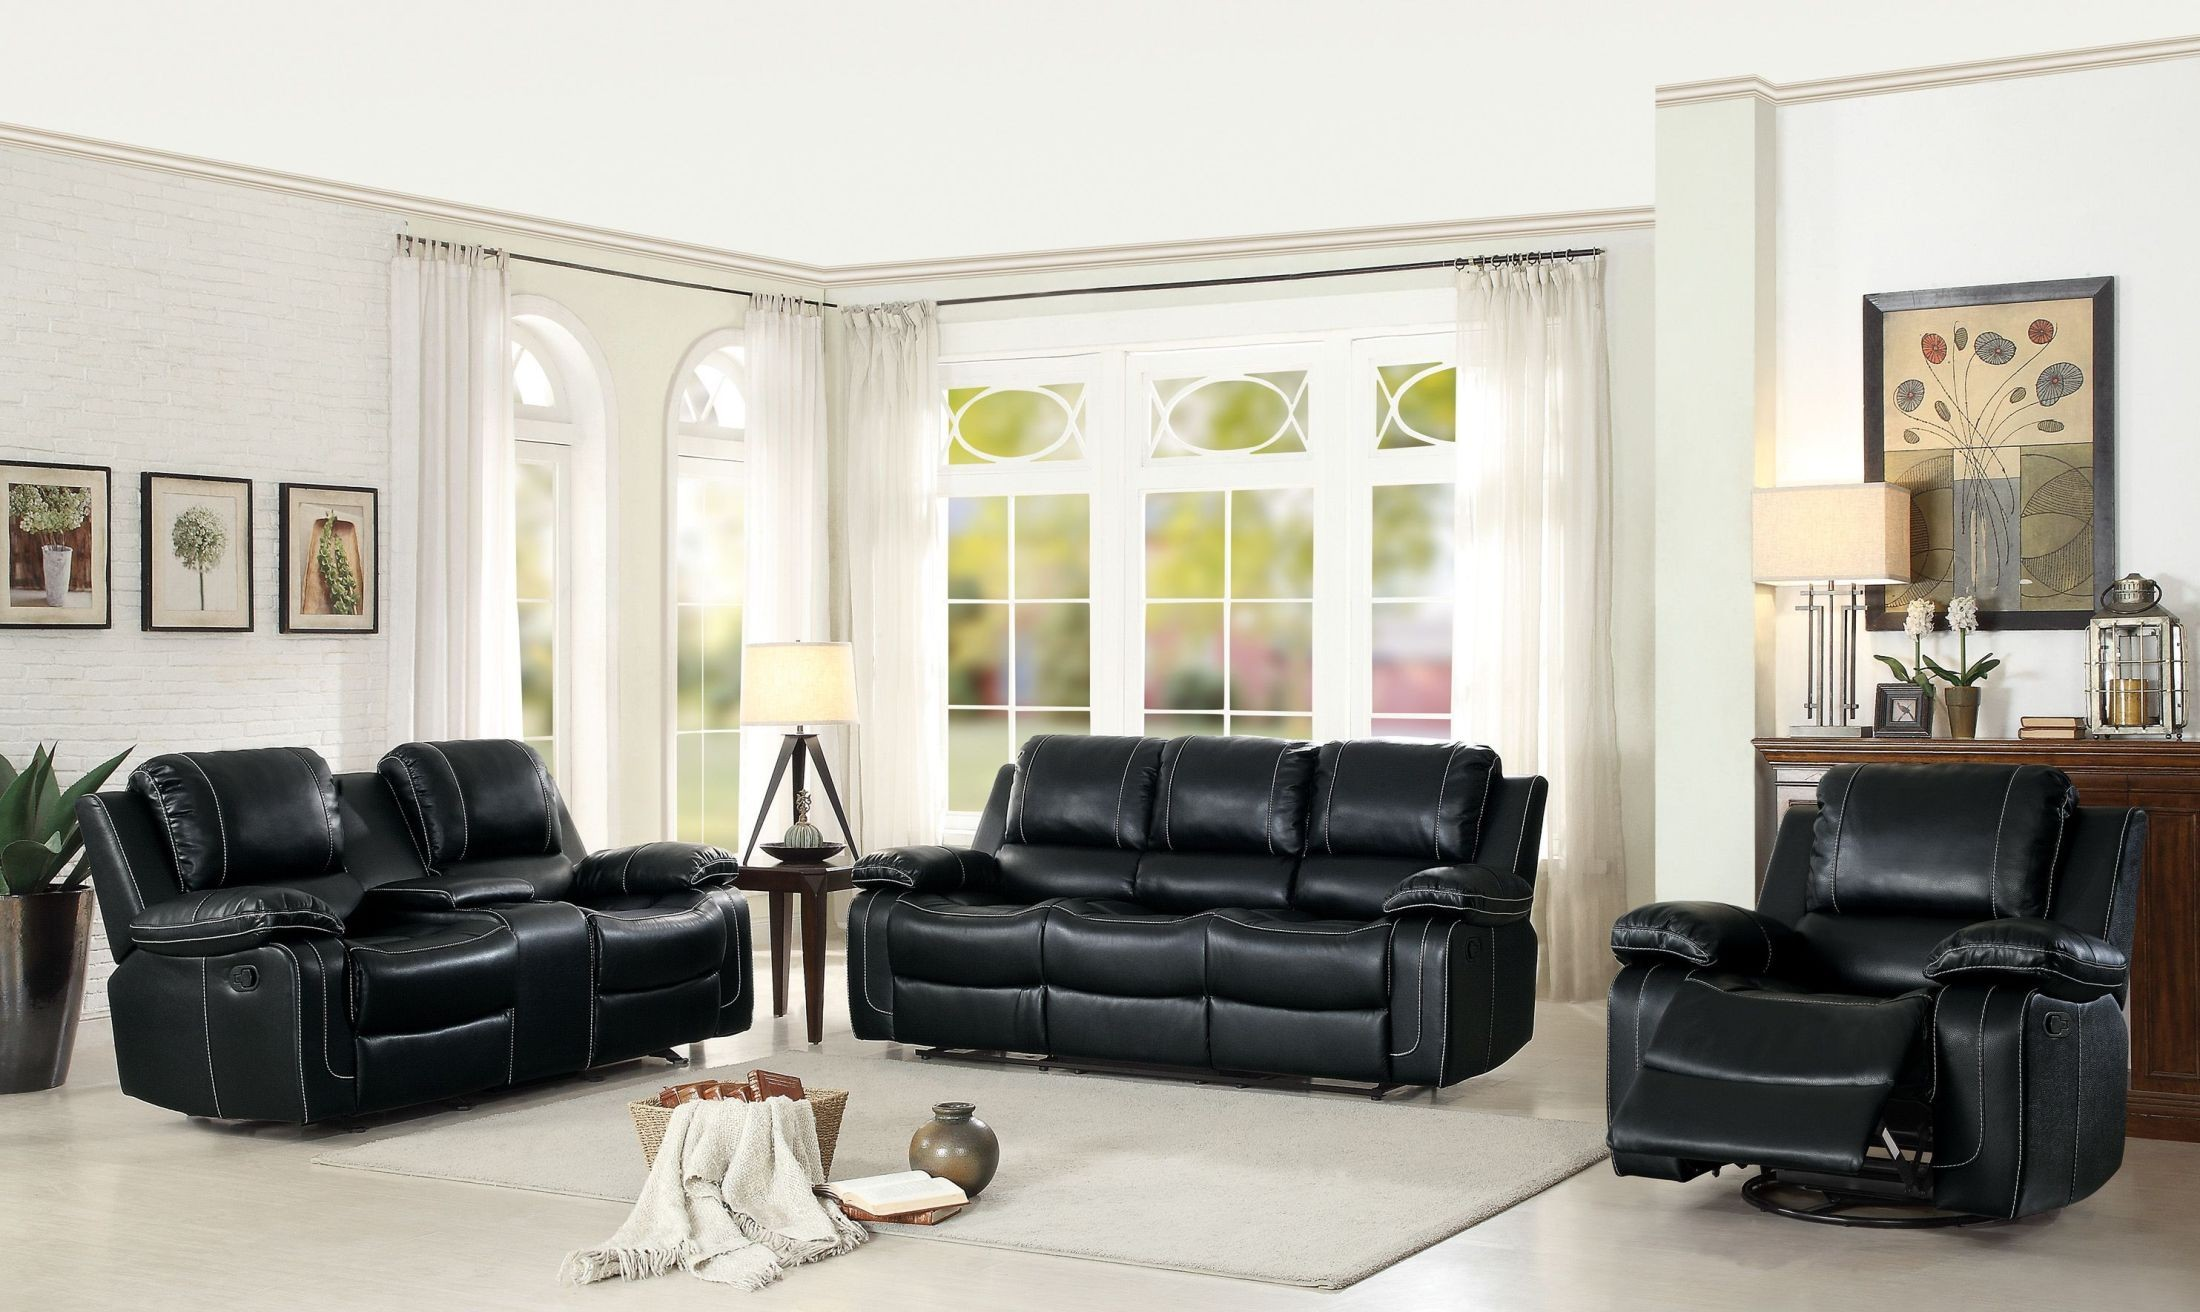 Oriole Black Double Reclining Living Room Set From Homelegance Coleman Furniture